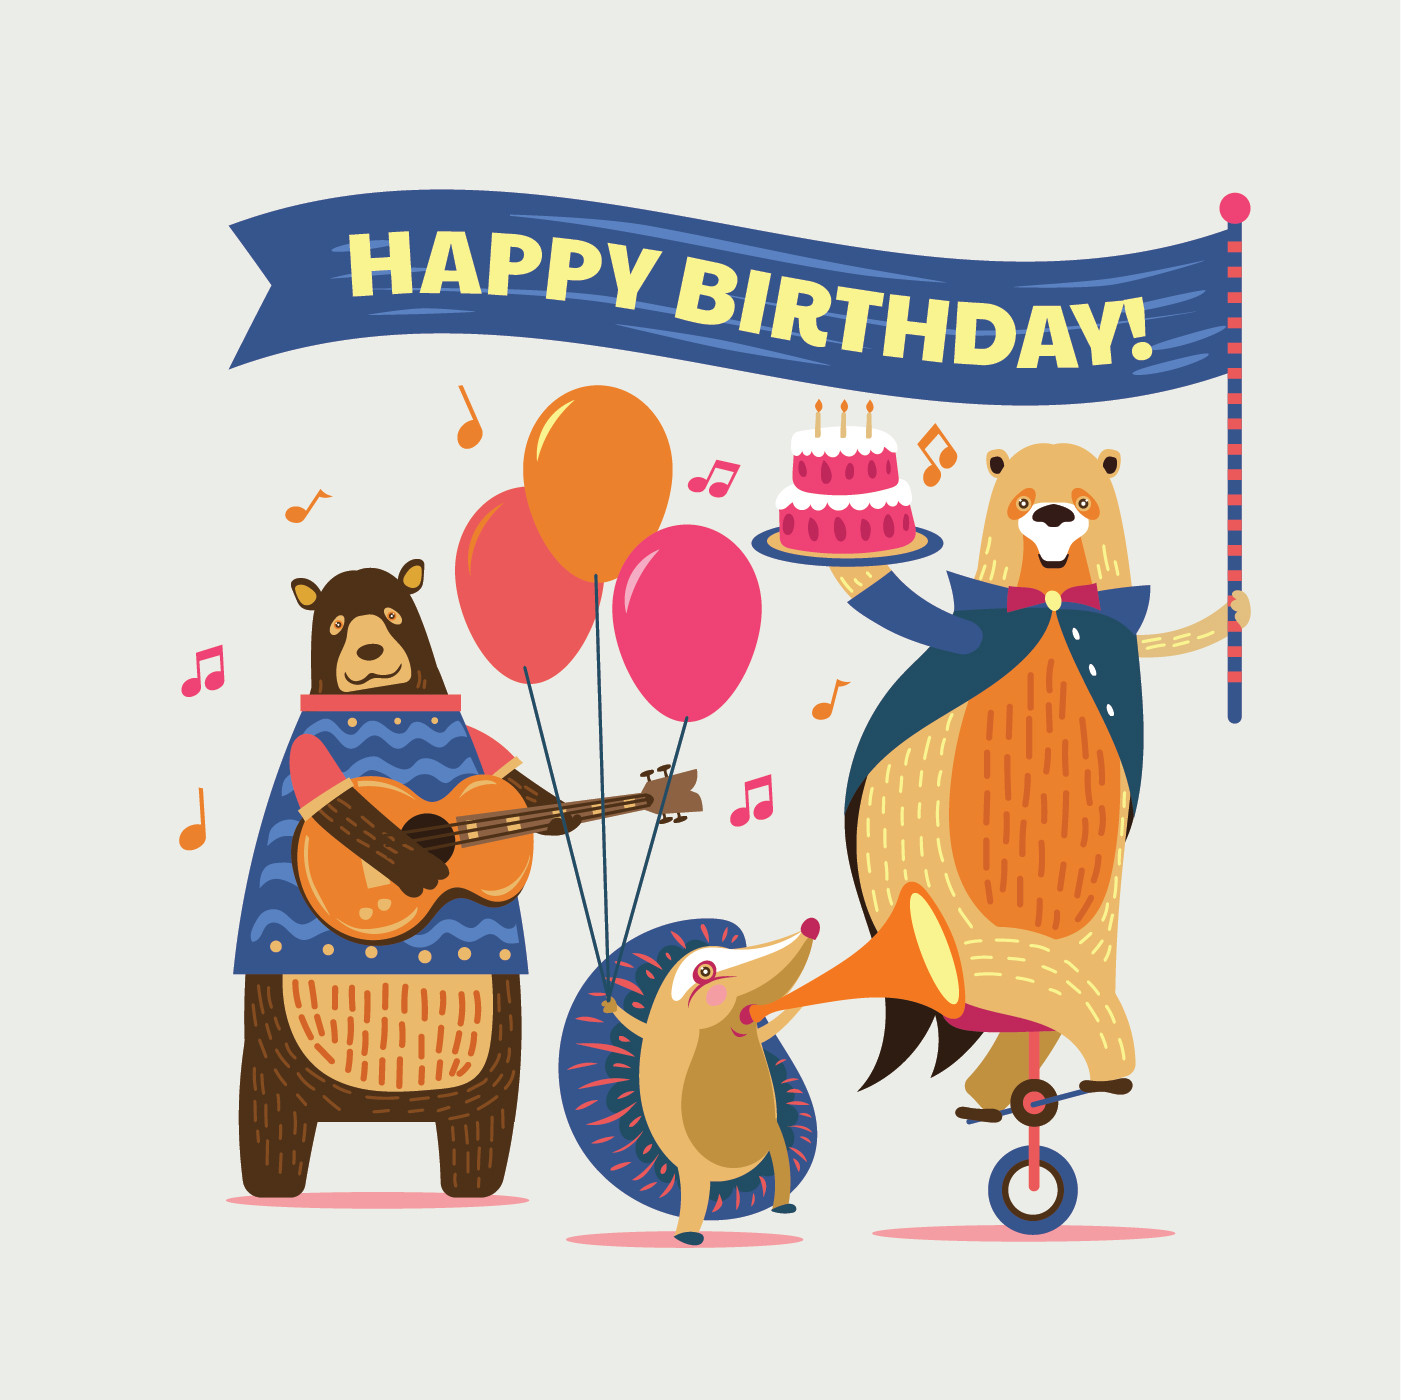 Animals For Kids Party  Cute Cartoon Animals Illustration for Kids Happy Birthday